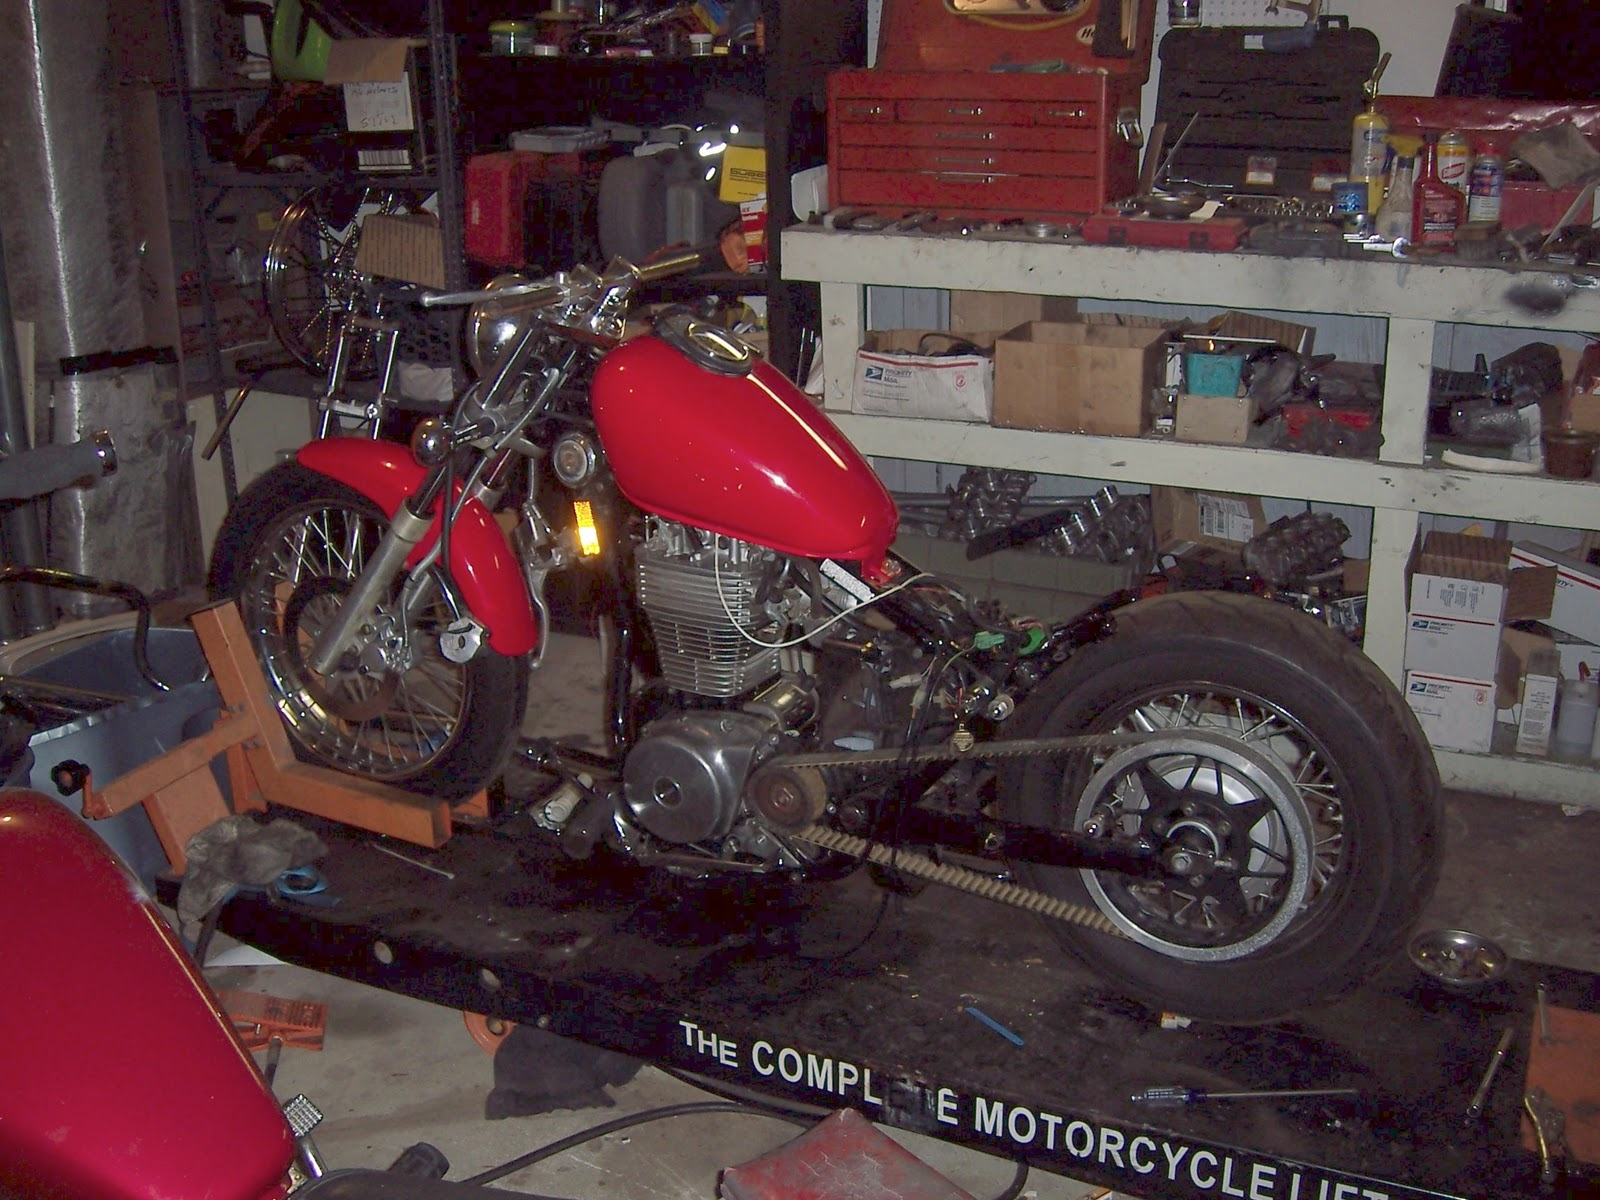 Maxresdefault moreover Maxresdefault additionally Img C Sa Imzab furthermore Suzuki Savage Ls With Custom Upgrades Only Miles further Stocktrottidestock. on 2001 suzuki savage ls 650